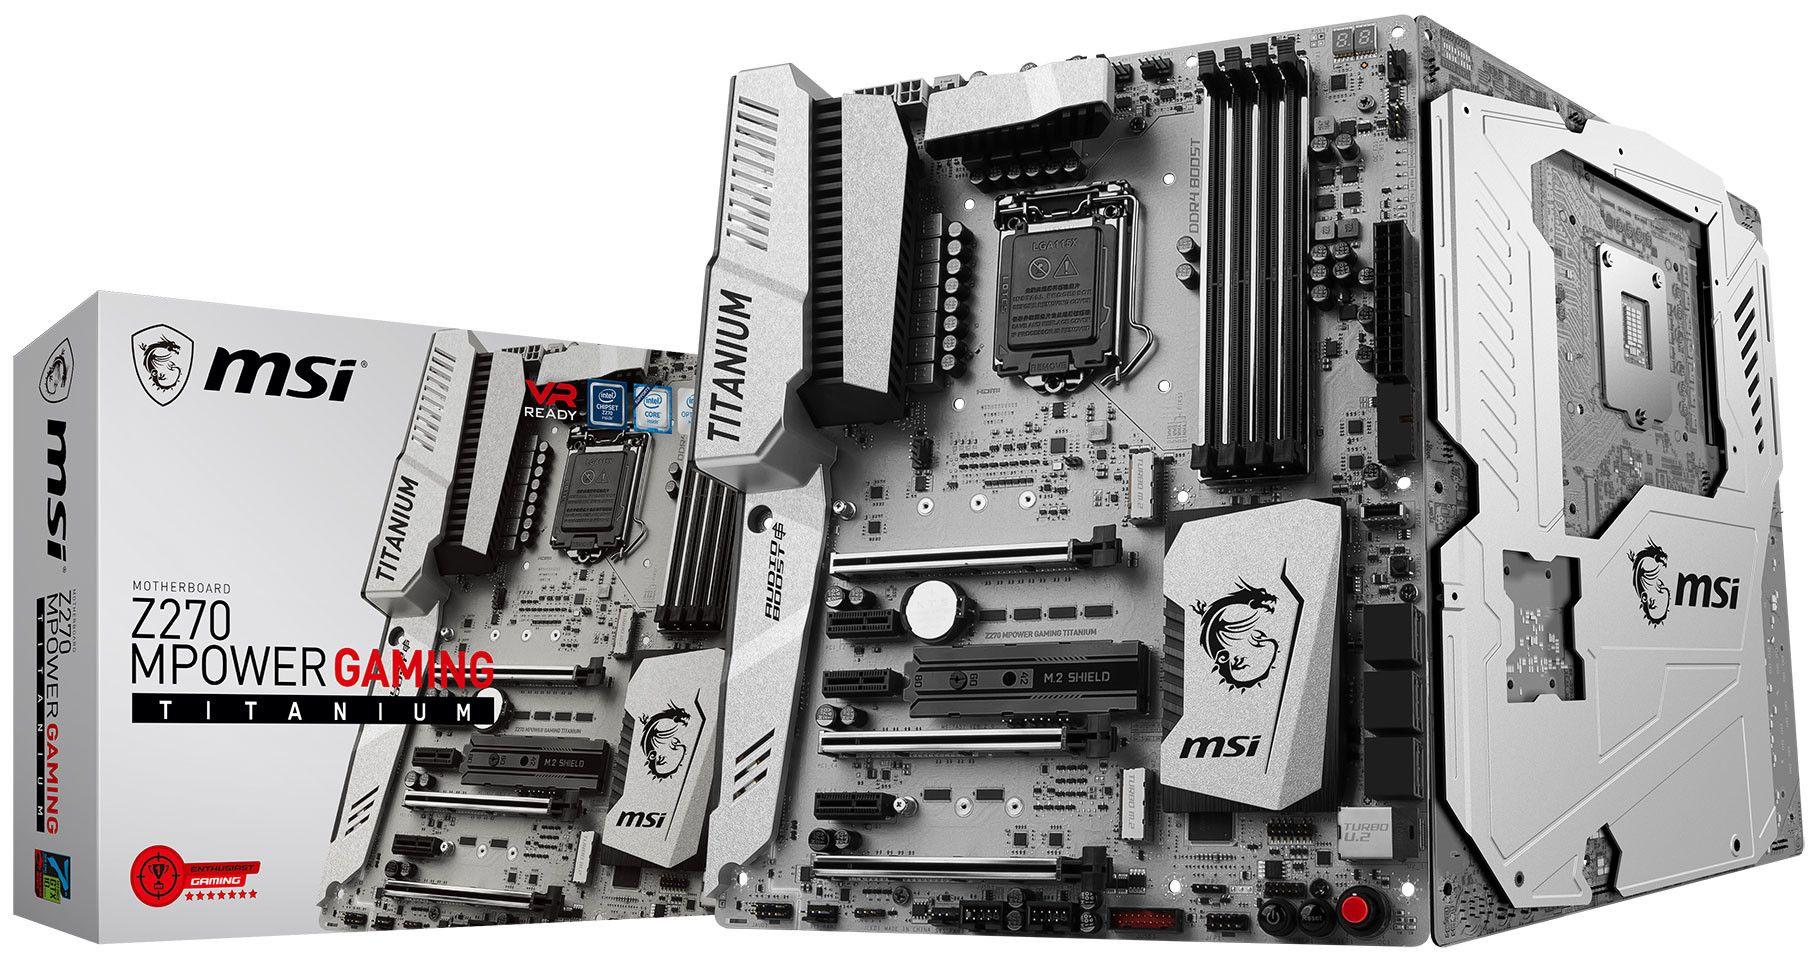 MSI Announces the Z270 MPOWER Gaming Titanium Motherboard